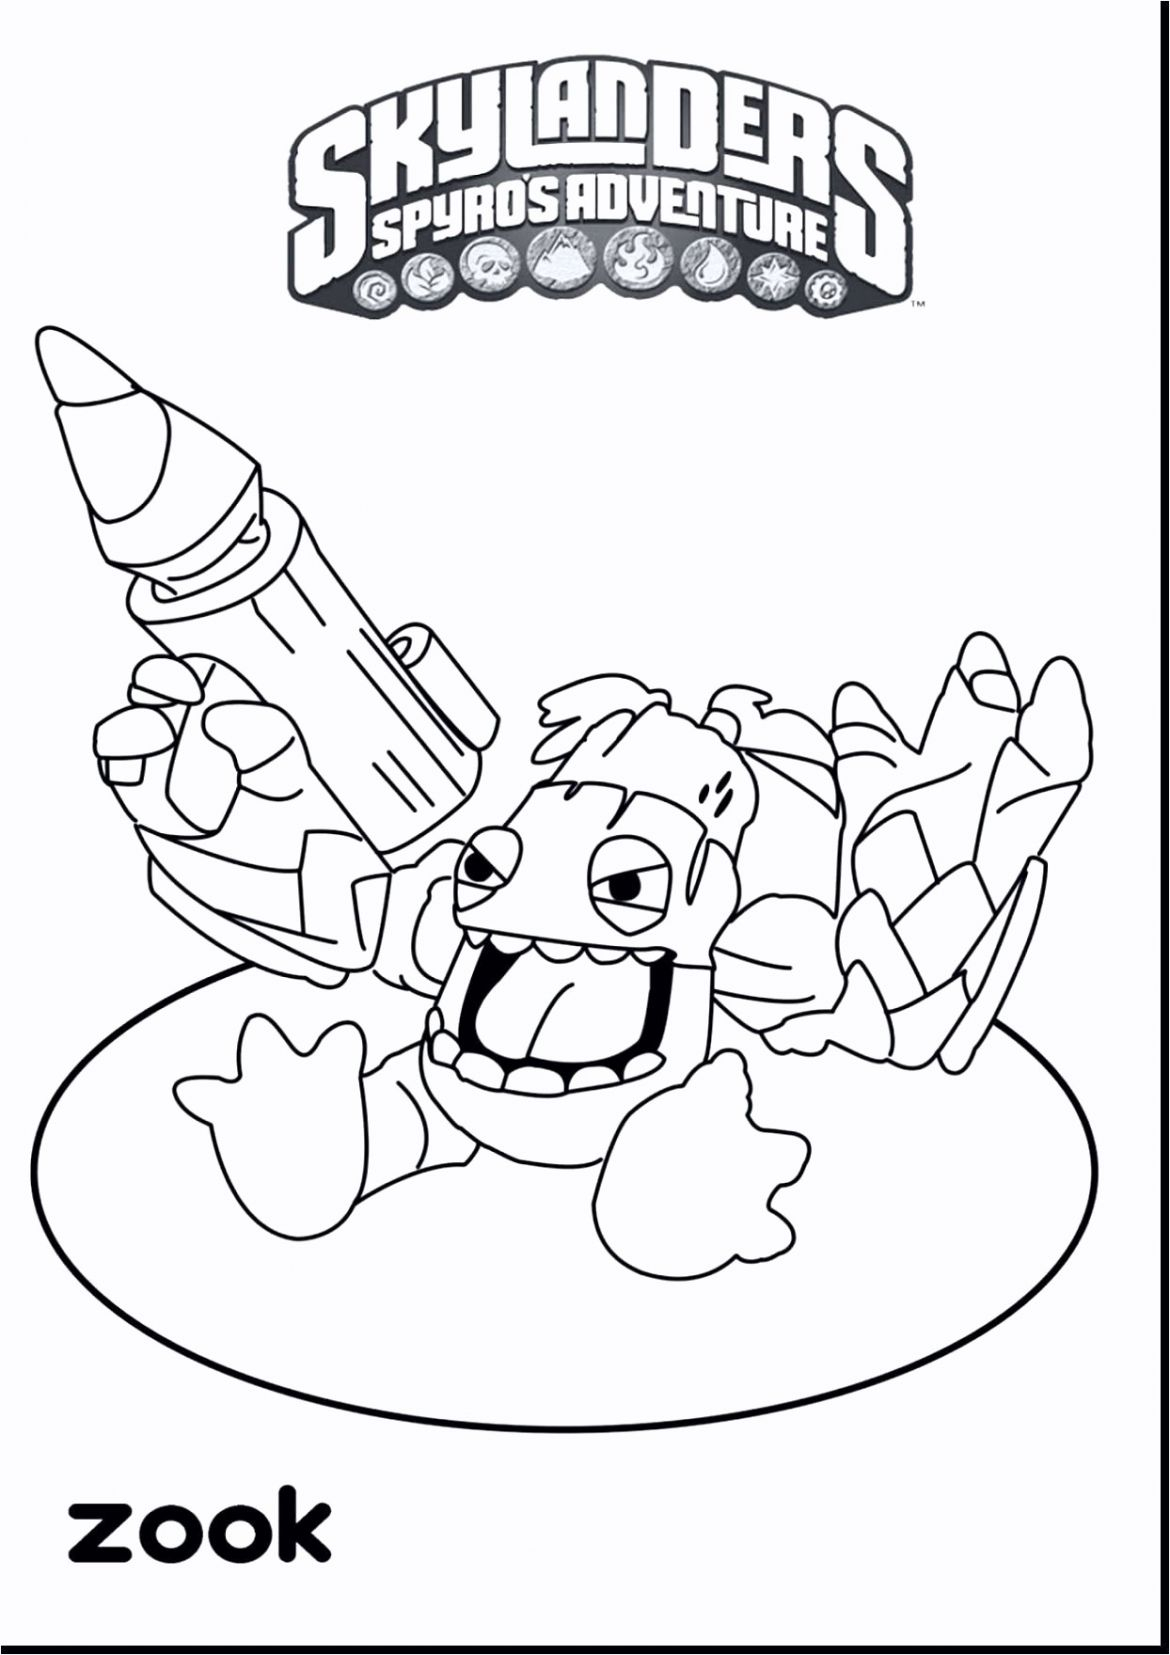 Summer Reading Coloring Pages  to Print 5p - Save it to your computer